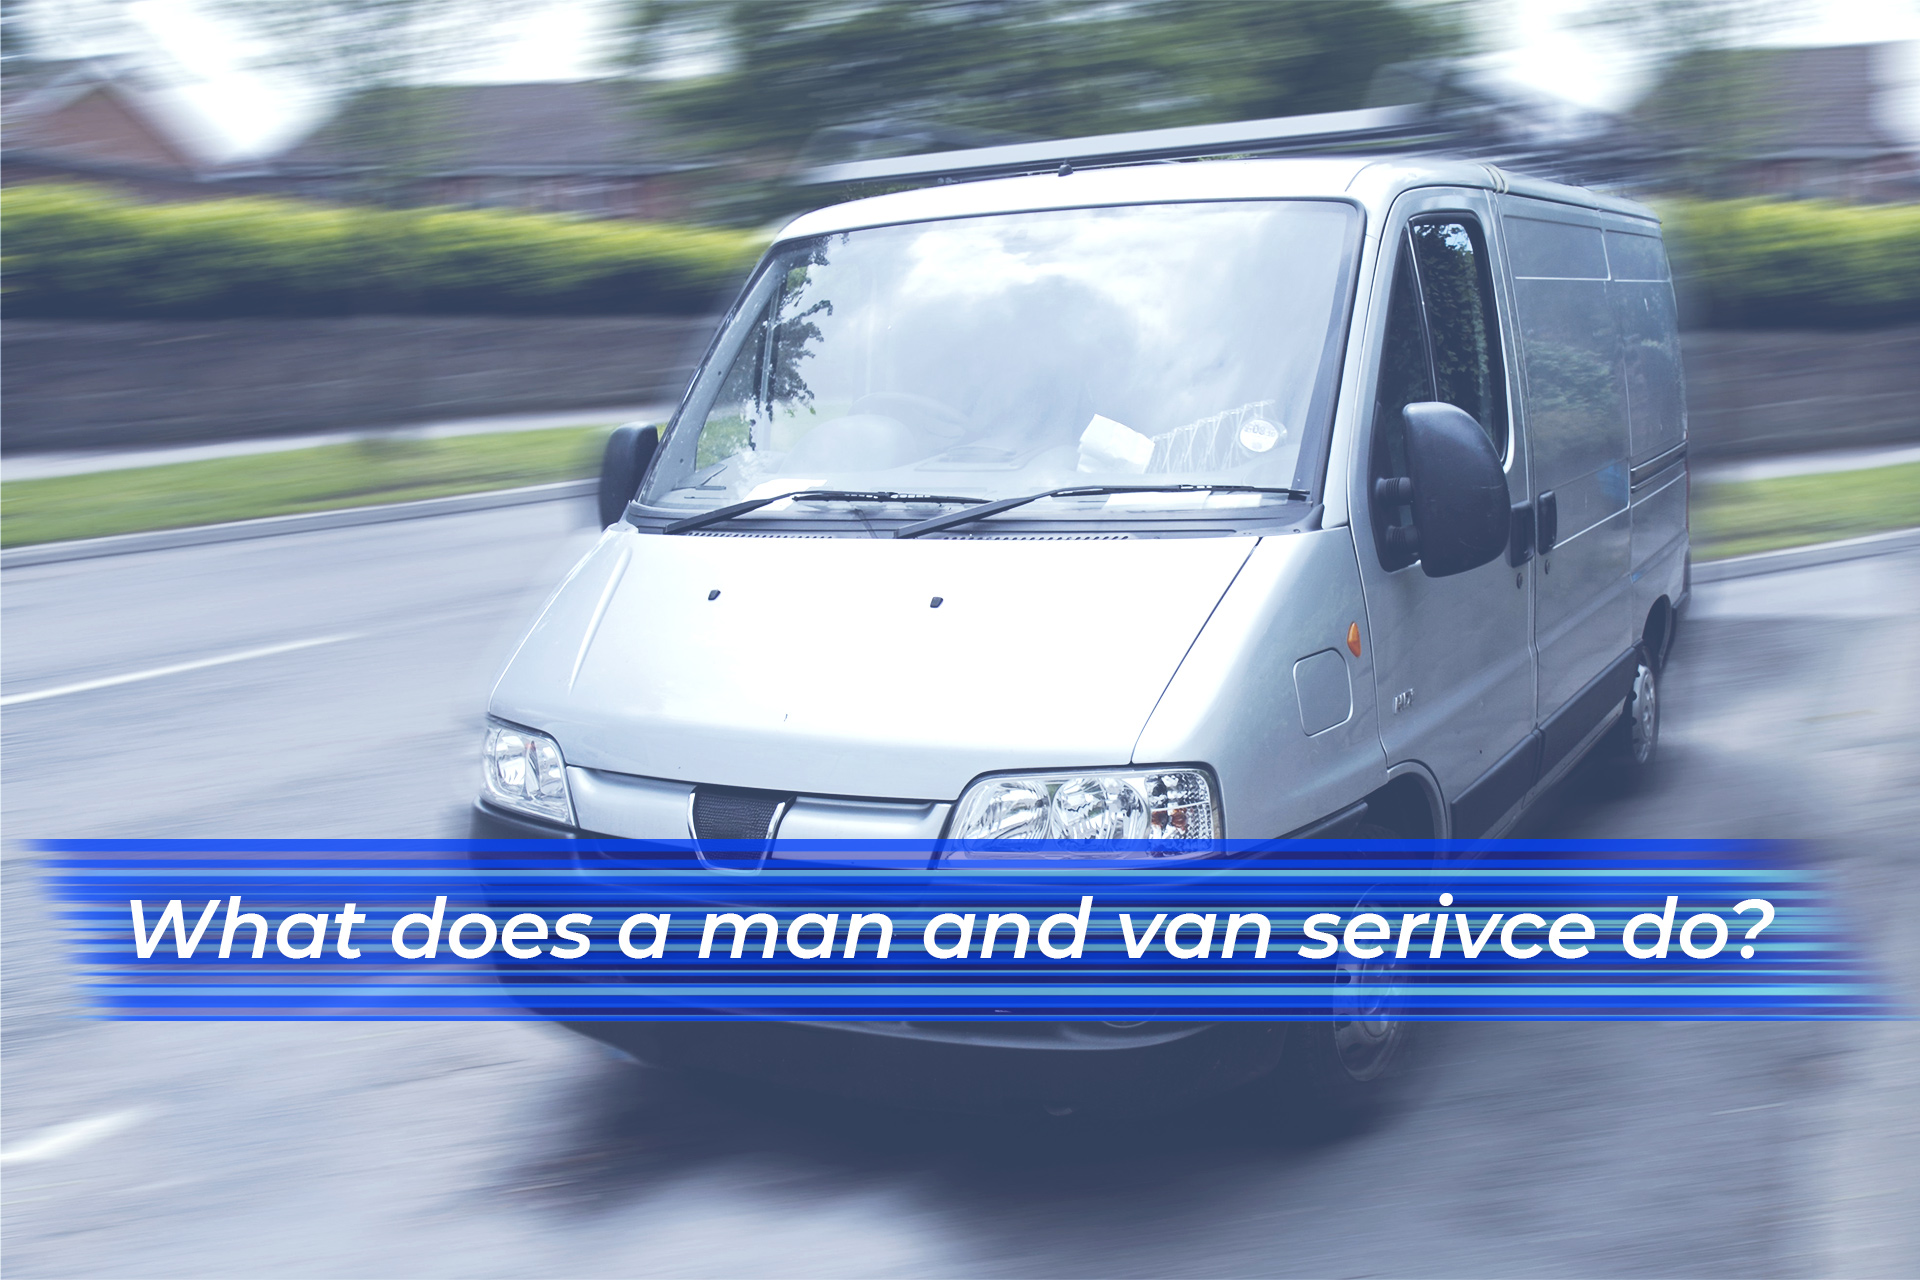 What does a man and van service do?